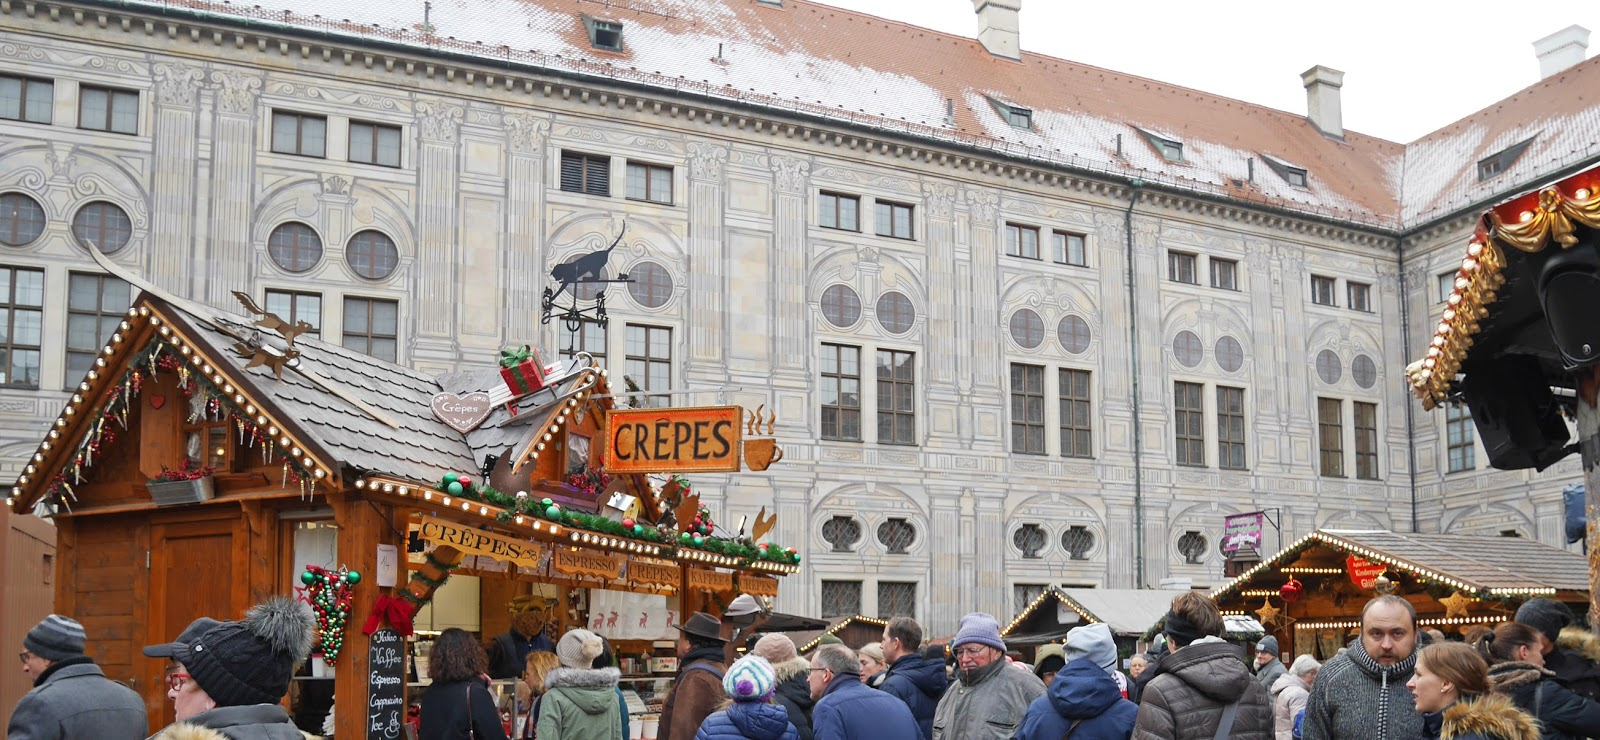 Food stalls at the Munich Christmas Markets